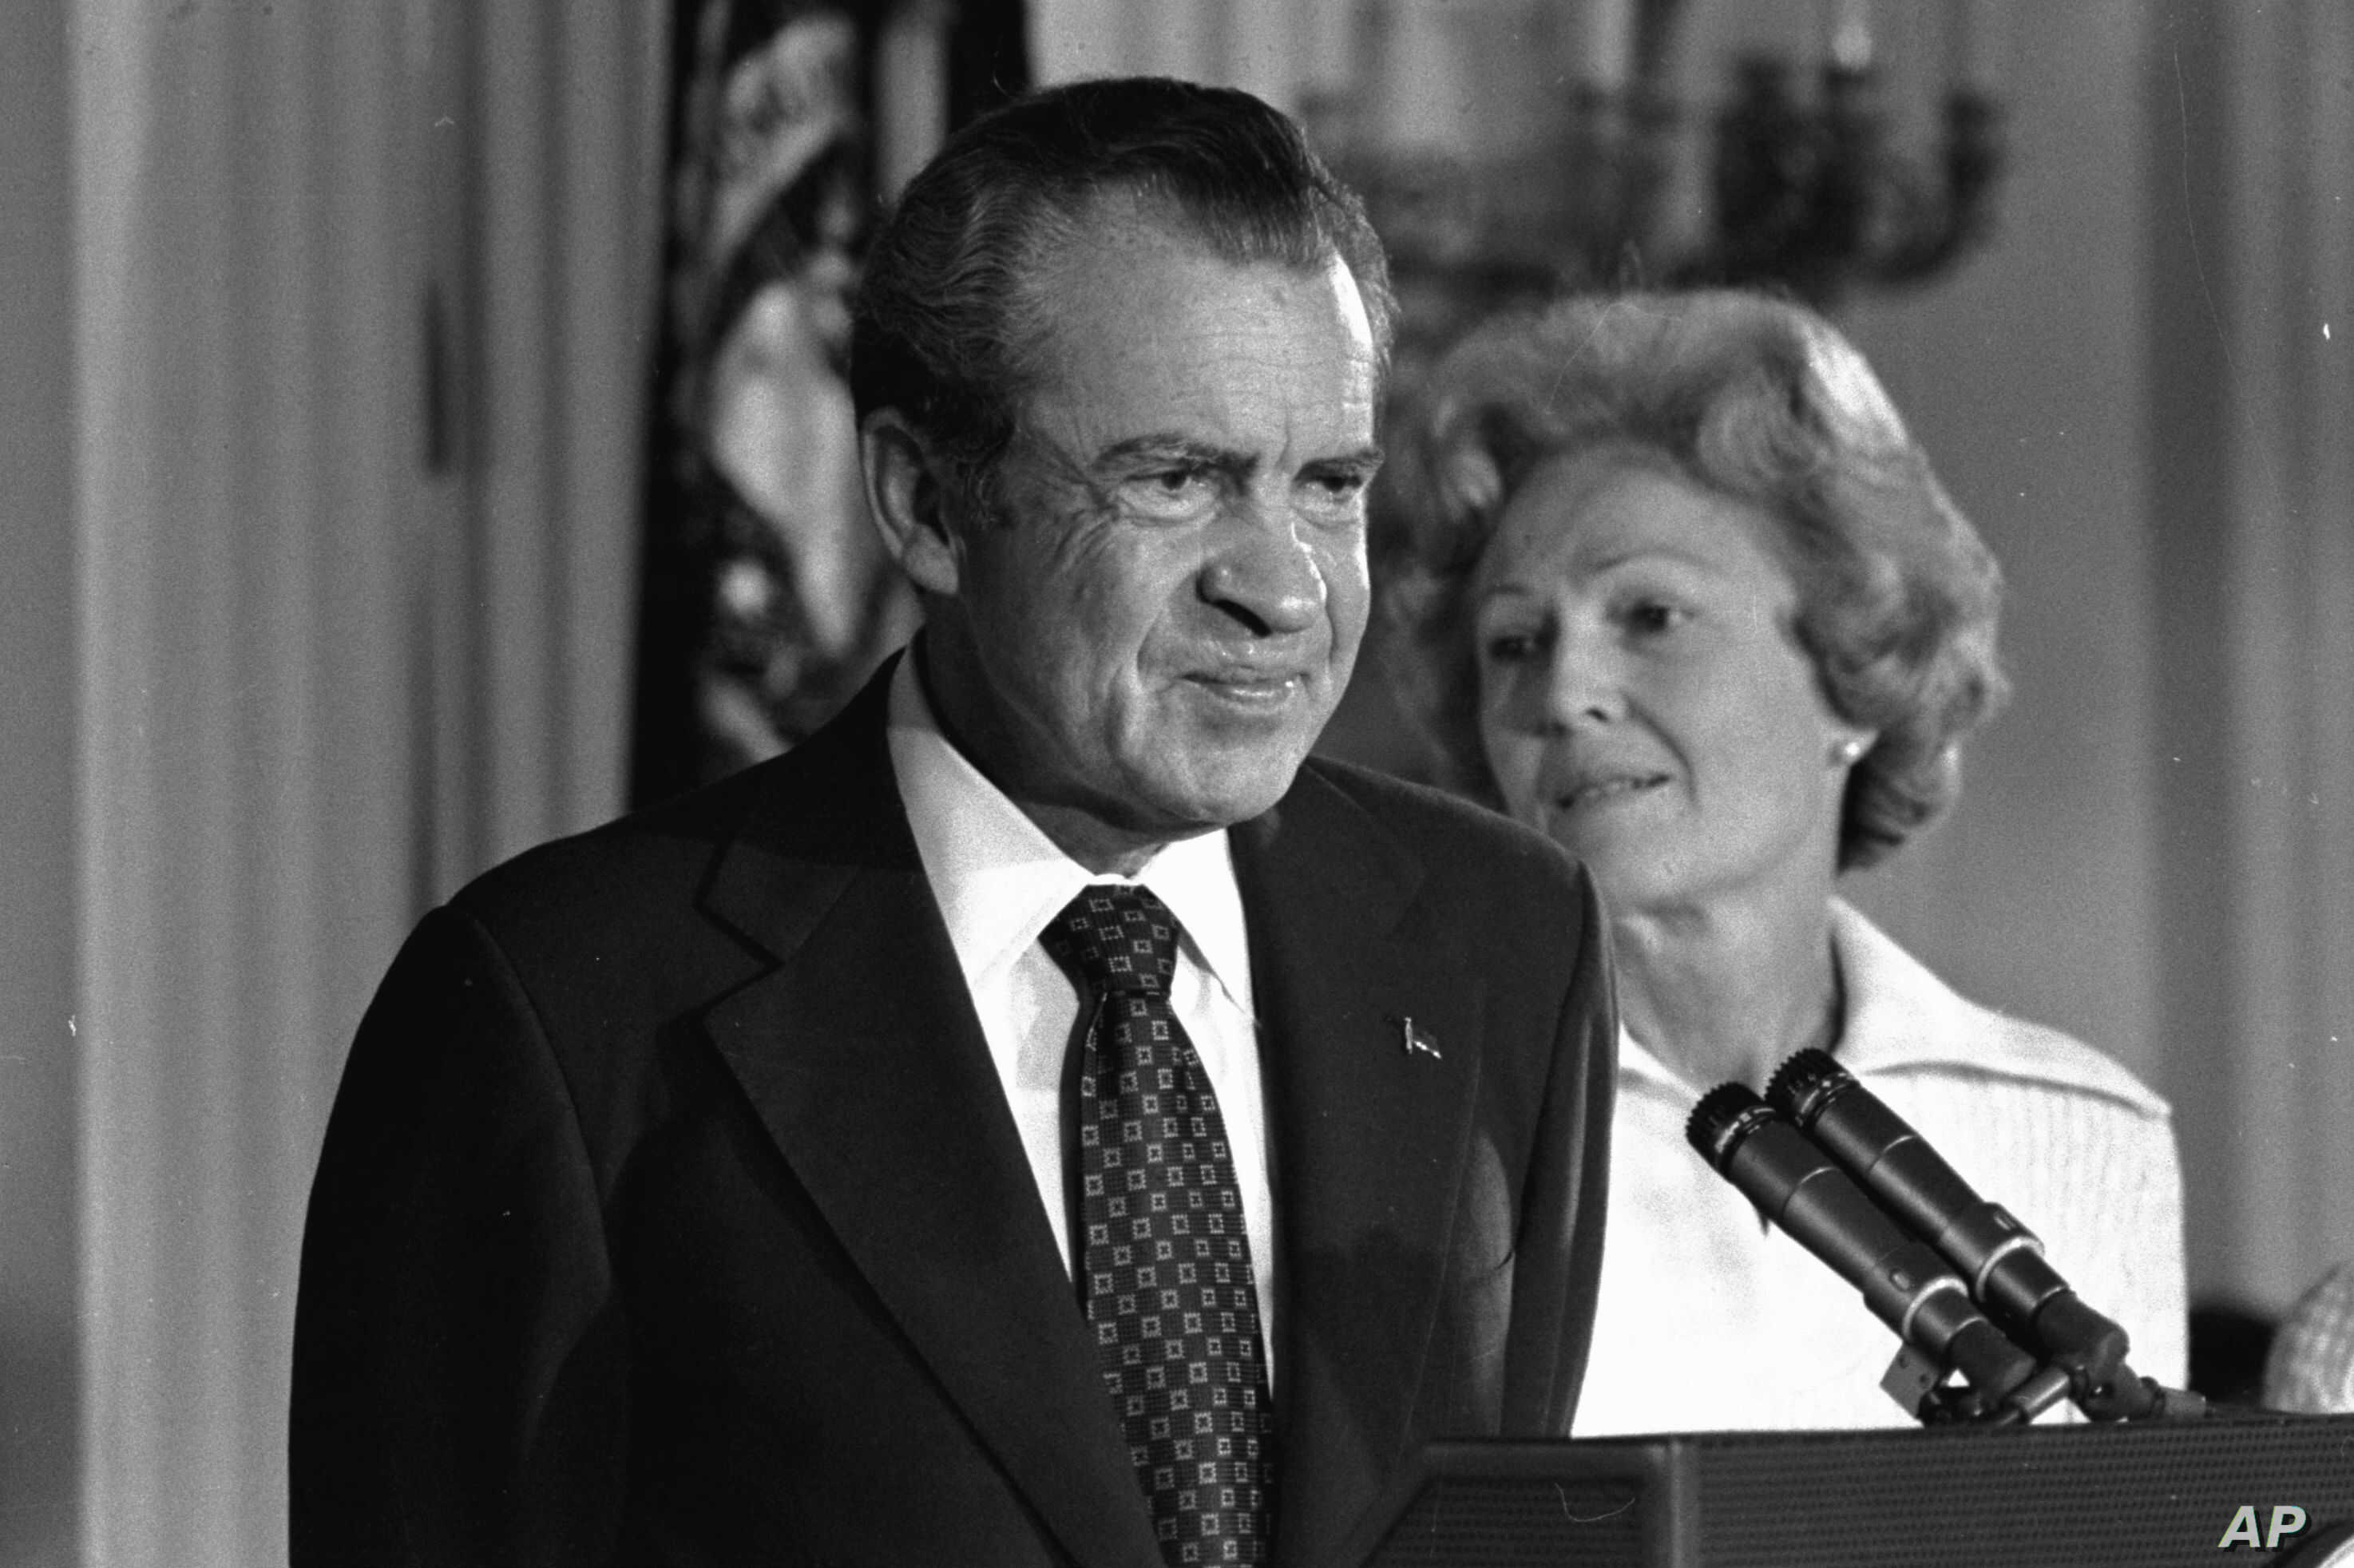 In this Aug. 9, 1974 black-and-white file photo, President Richard M. Nixon and his wife Pat Nixon are shown standing together in the East Room of the White House in Washington.